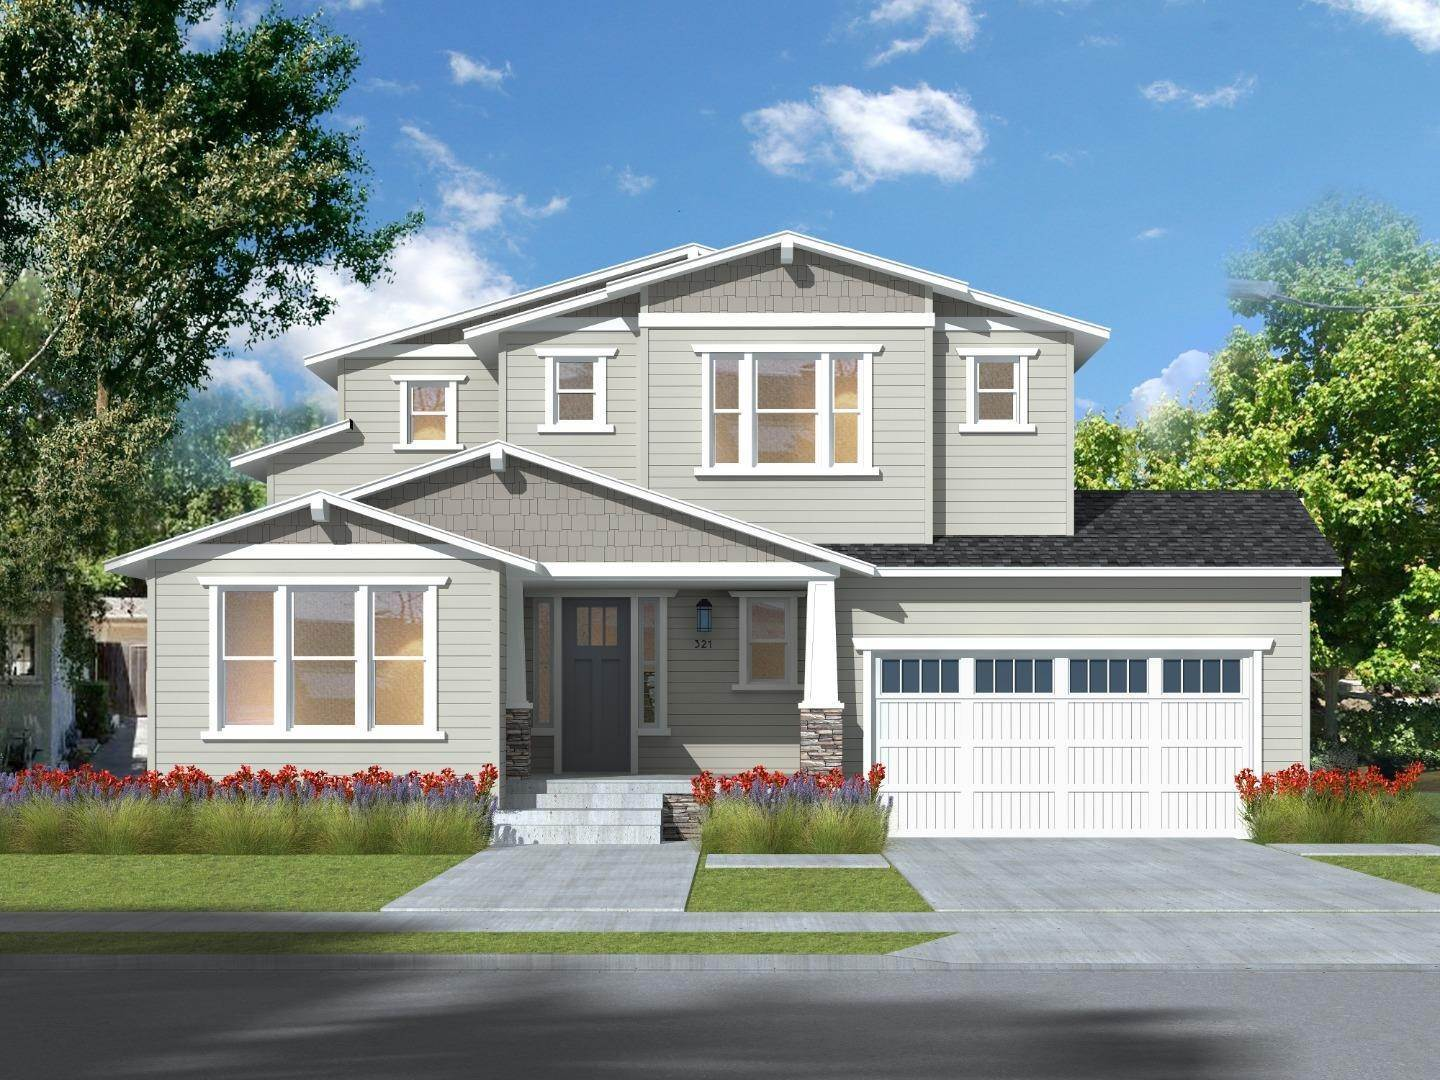 Single Family Homes for Sale at 321 Nova Lane Menlo Park, California 94025 United States